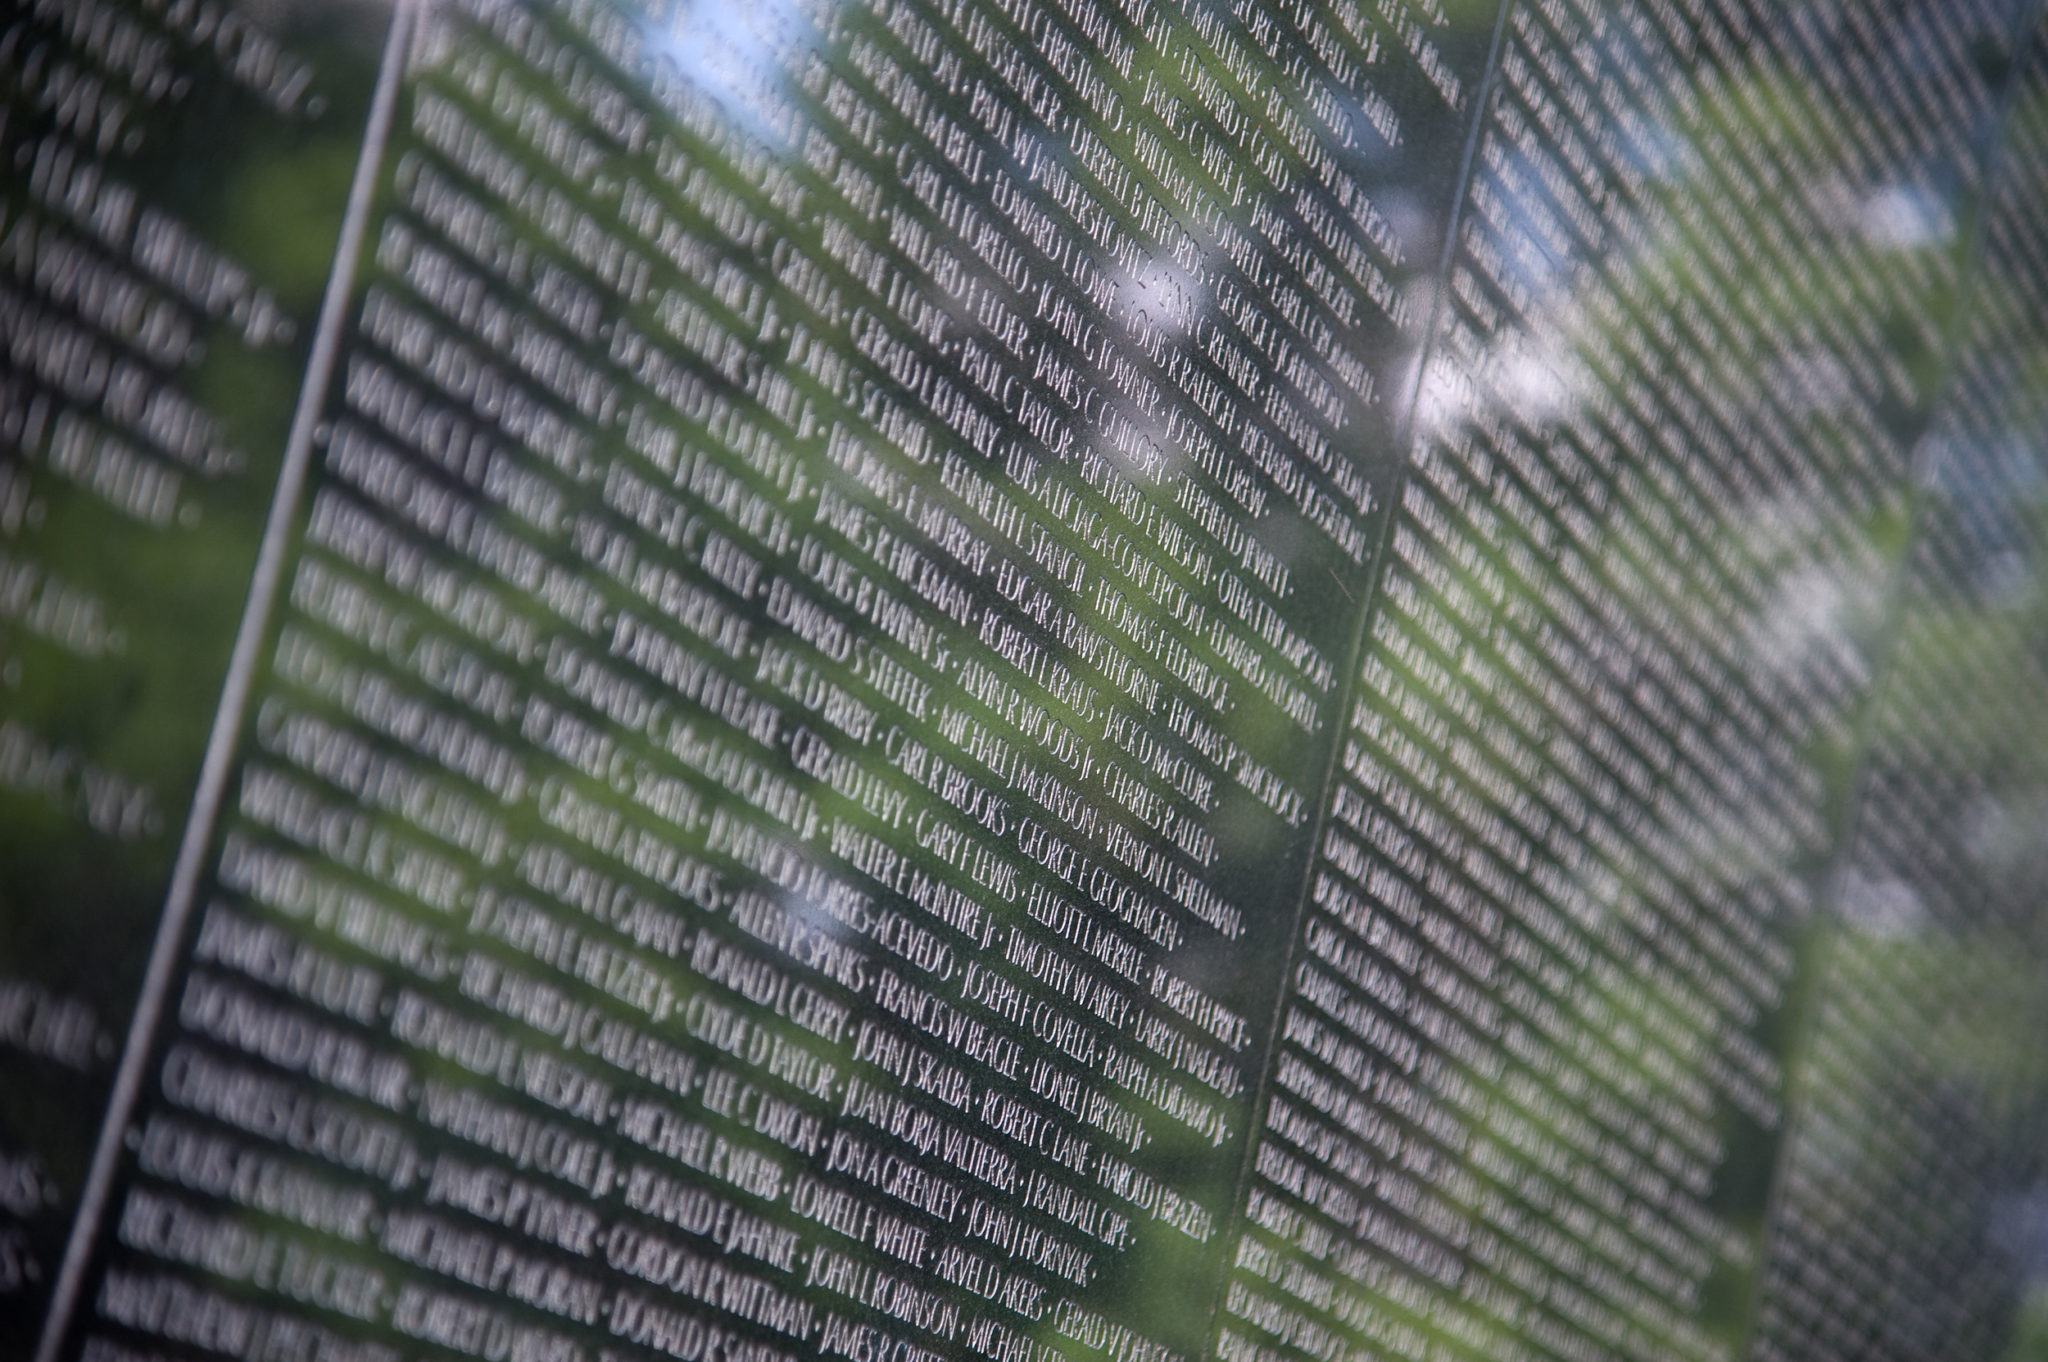 Duplications, misspellings, and miscounts found in new study of the Vietnam wall